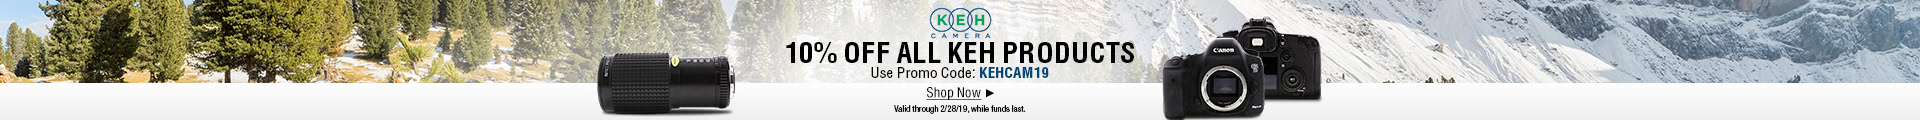 10% OFF ALL KEH PRODUCTS